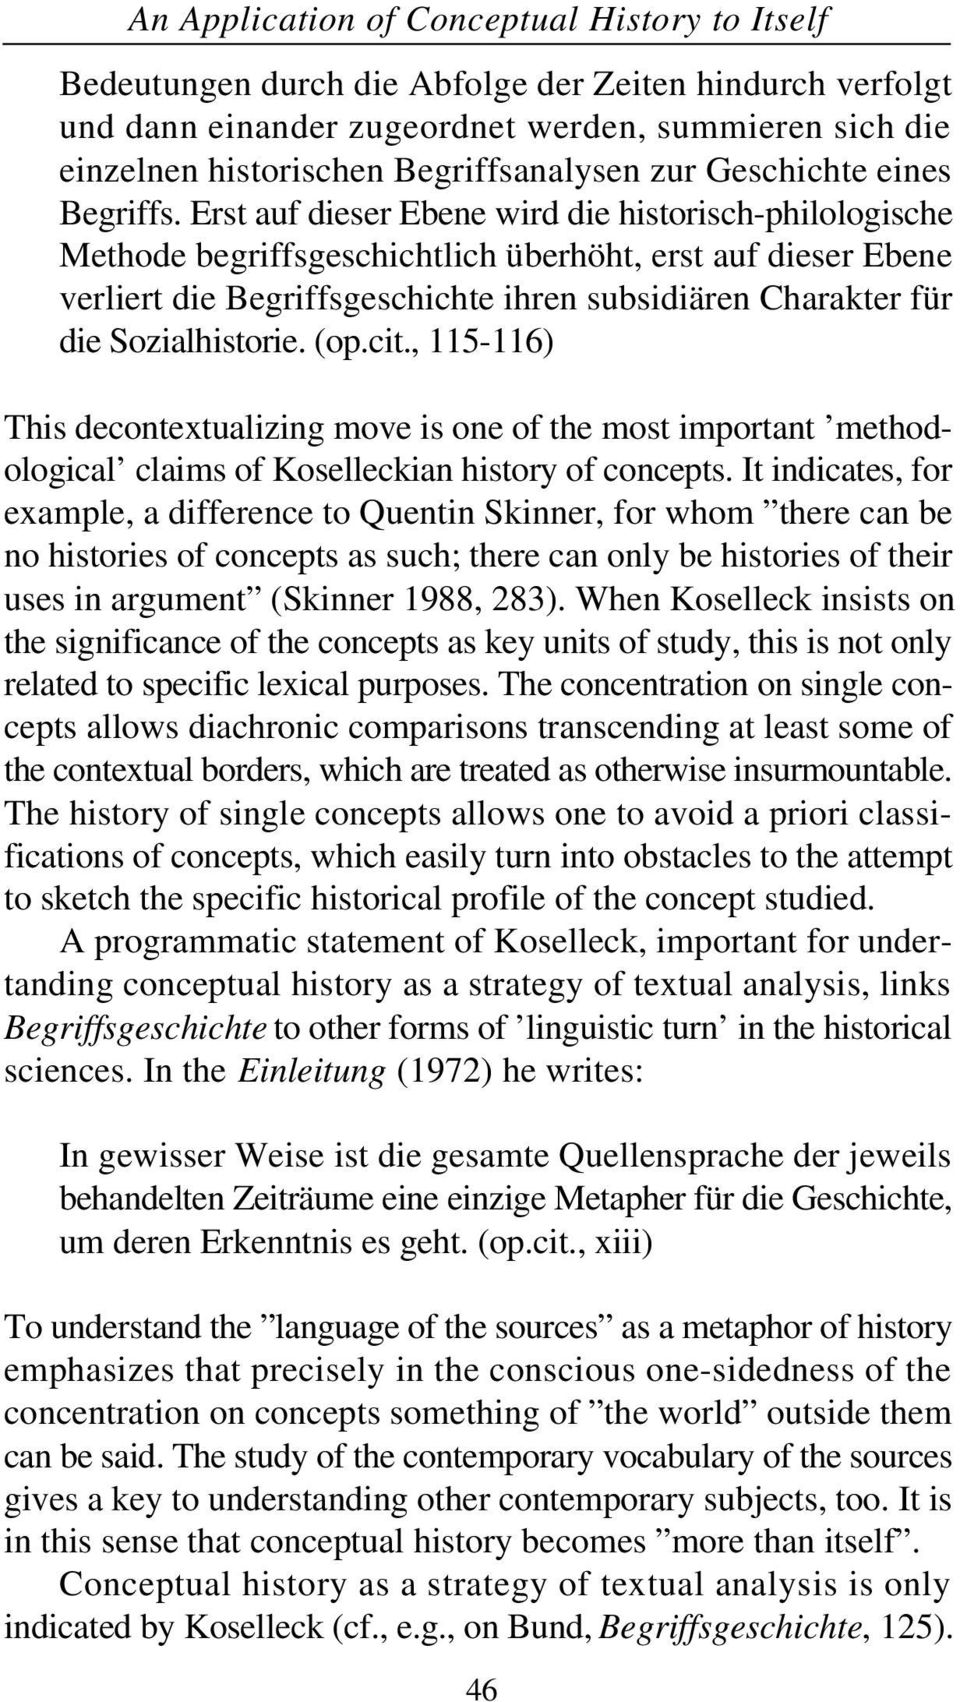 Sozialhistorie. (op.cit., 115-116) This decontextualizing move is one of the most important methodological claims of Koselleckian history of concepts.